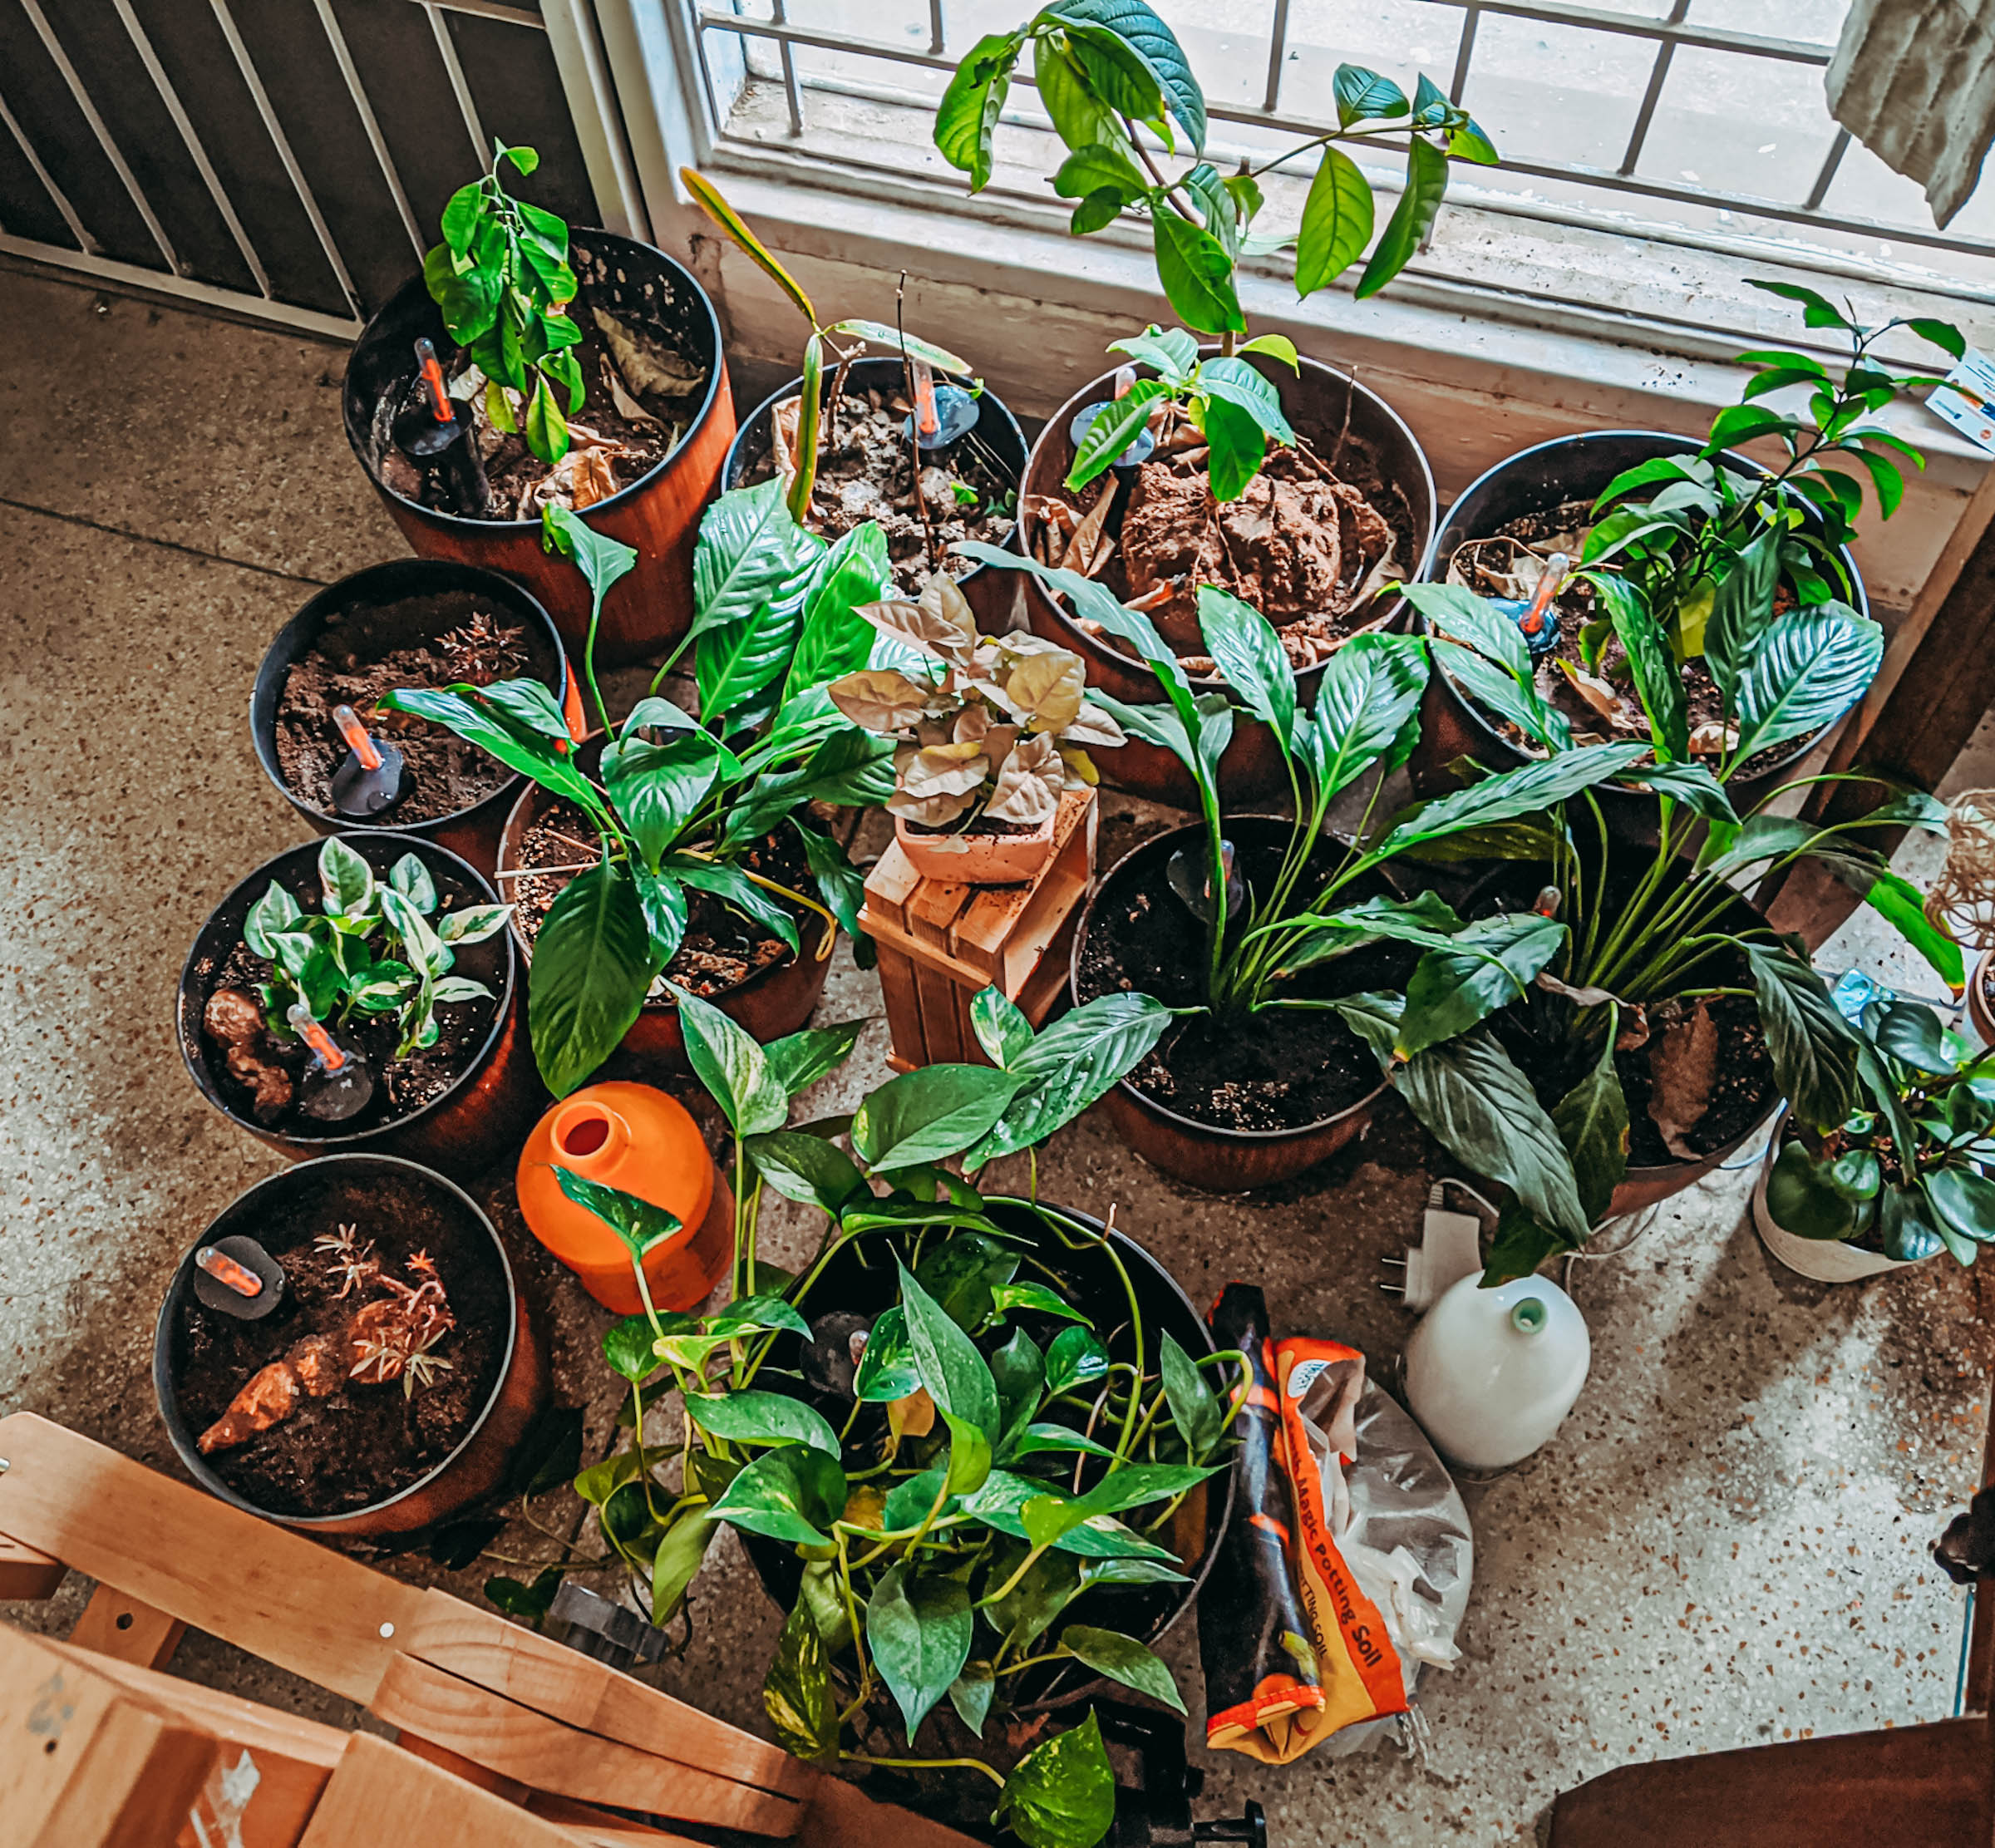 naina.co, naina redhu, self-watering pots, plastic pots, plant pots, flower pots, self-watering plant pots, amazon india, india, indoor plants, apartment plants, indoor garden, coco peat, soil, home garden, gardening, green fingers